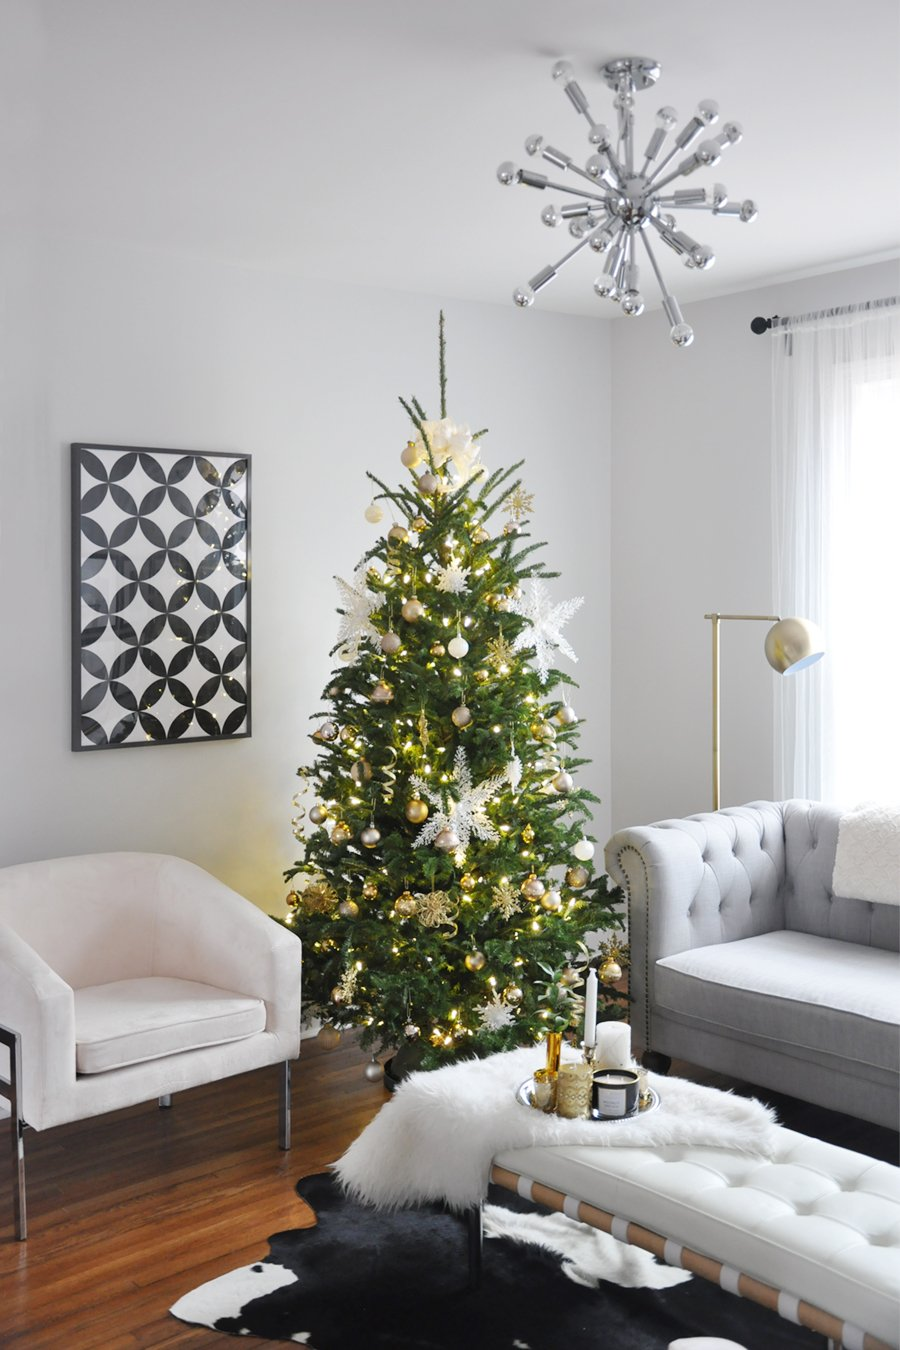 2016 Winter Home Tour: DIY Holiday Decorating Ideas and Tips